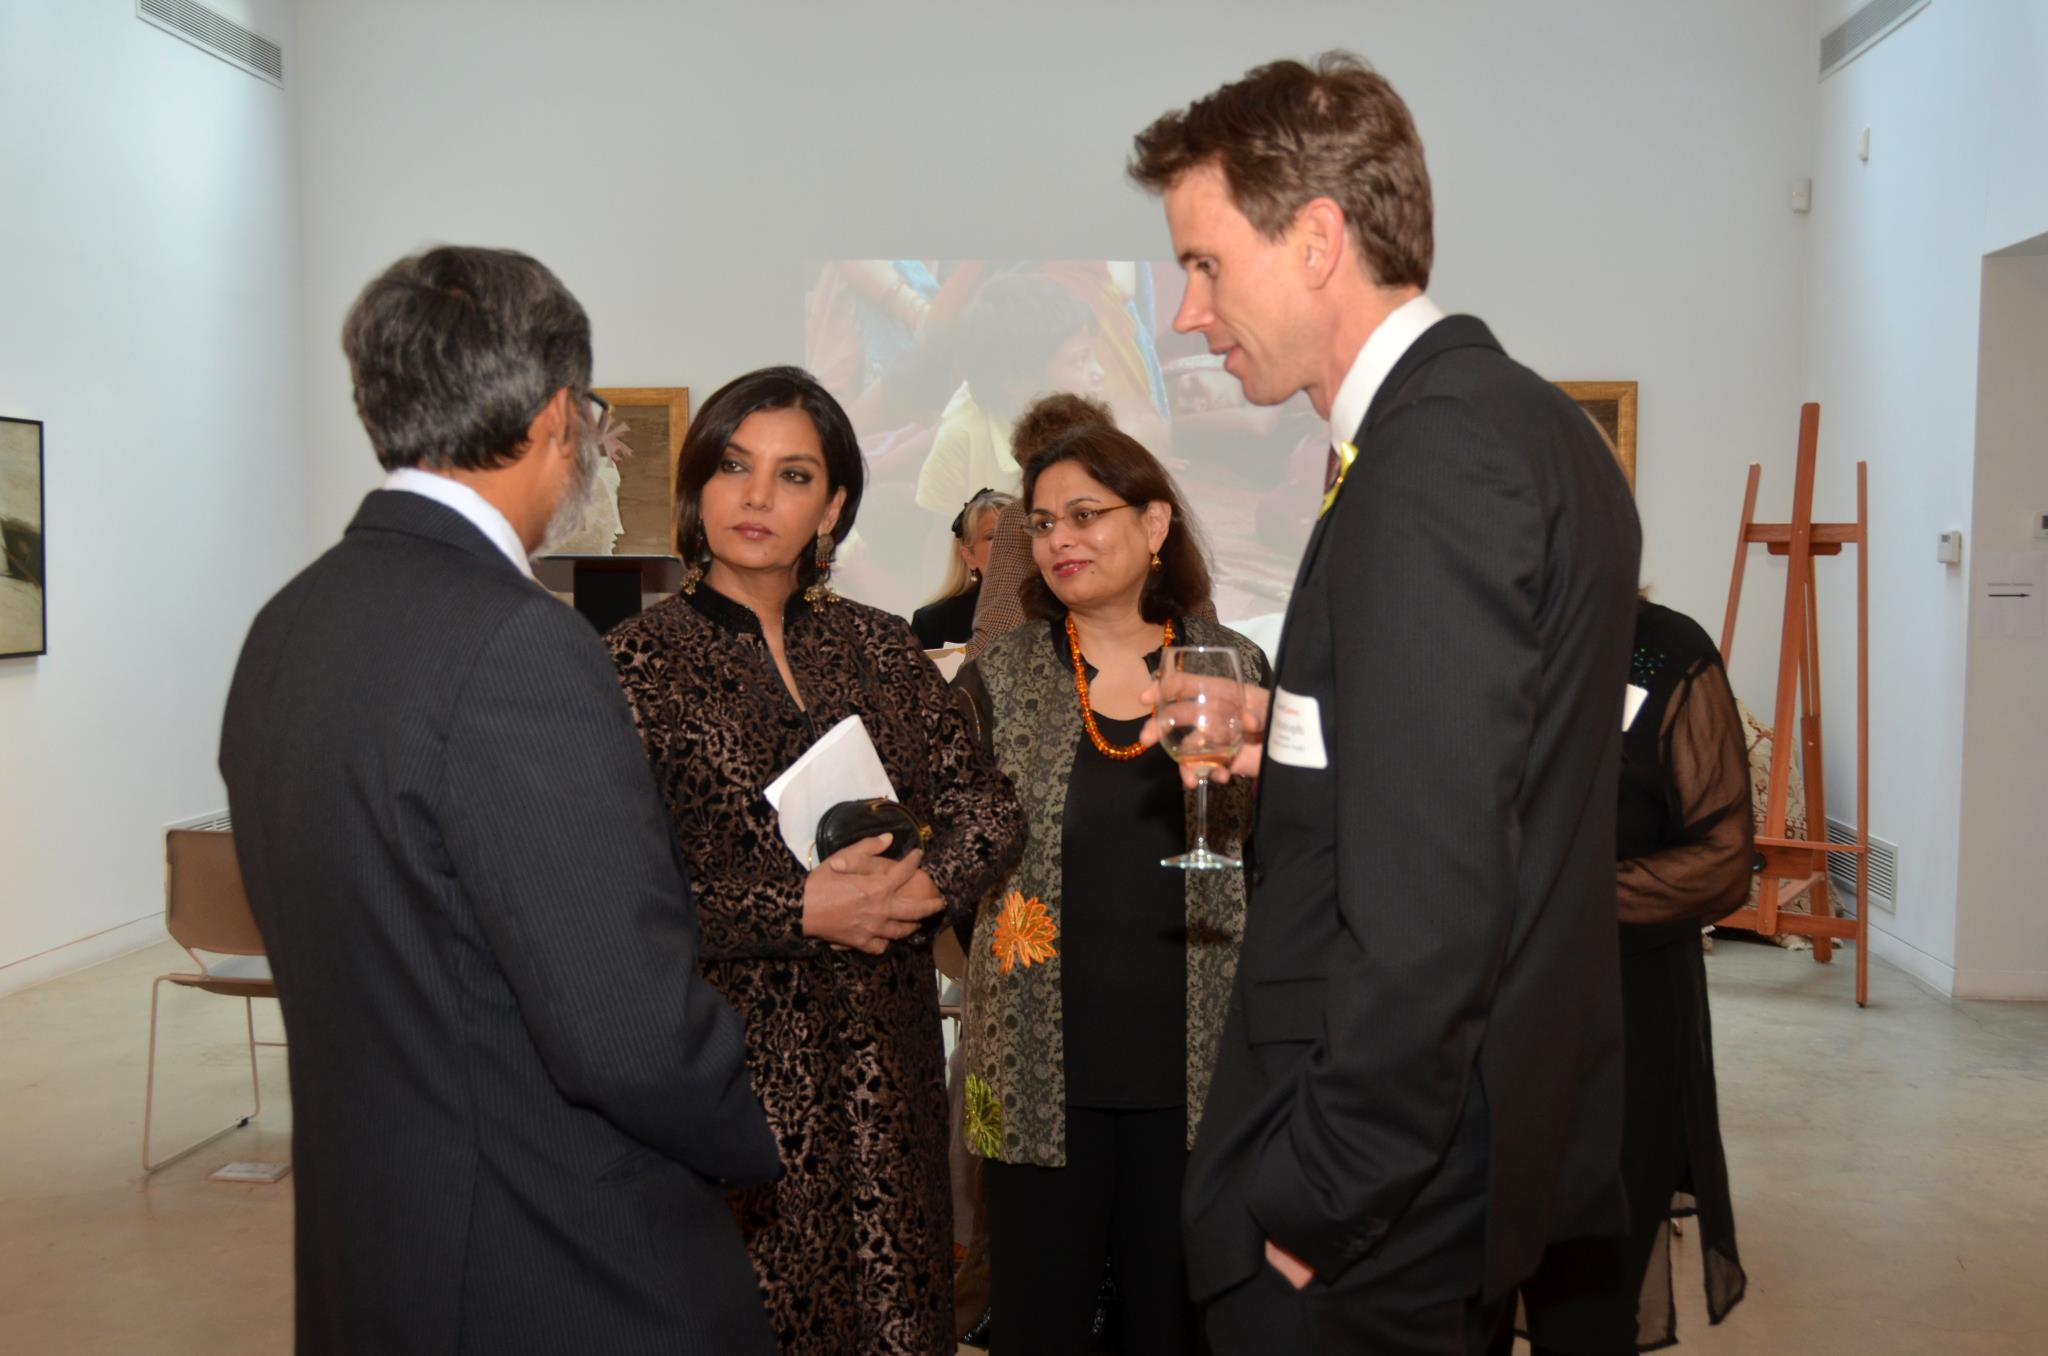 PP At Americares event with actress Shabana Azmi.jpg